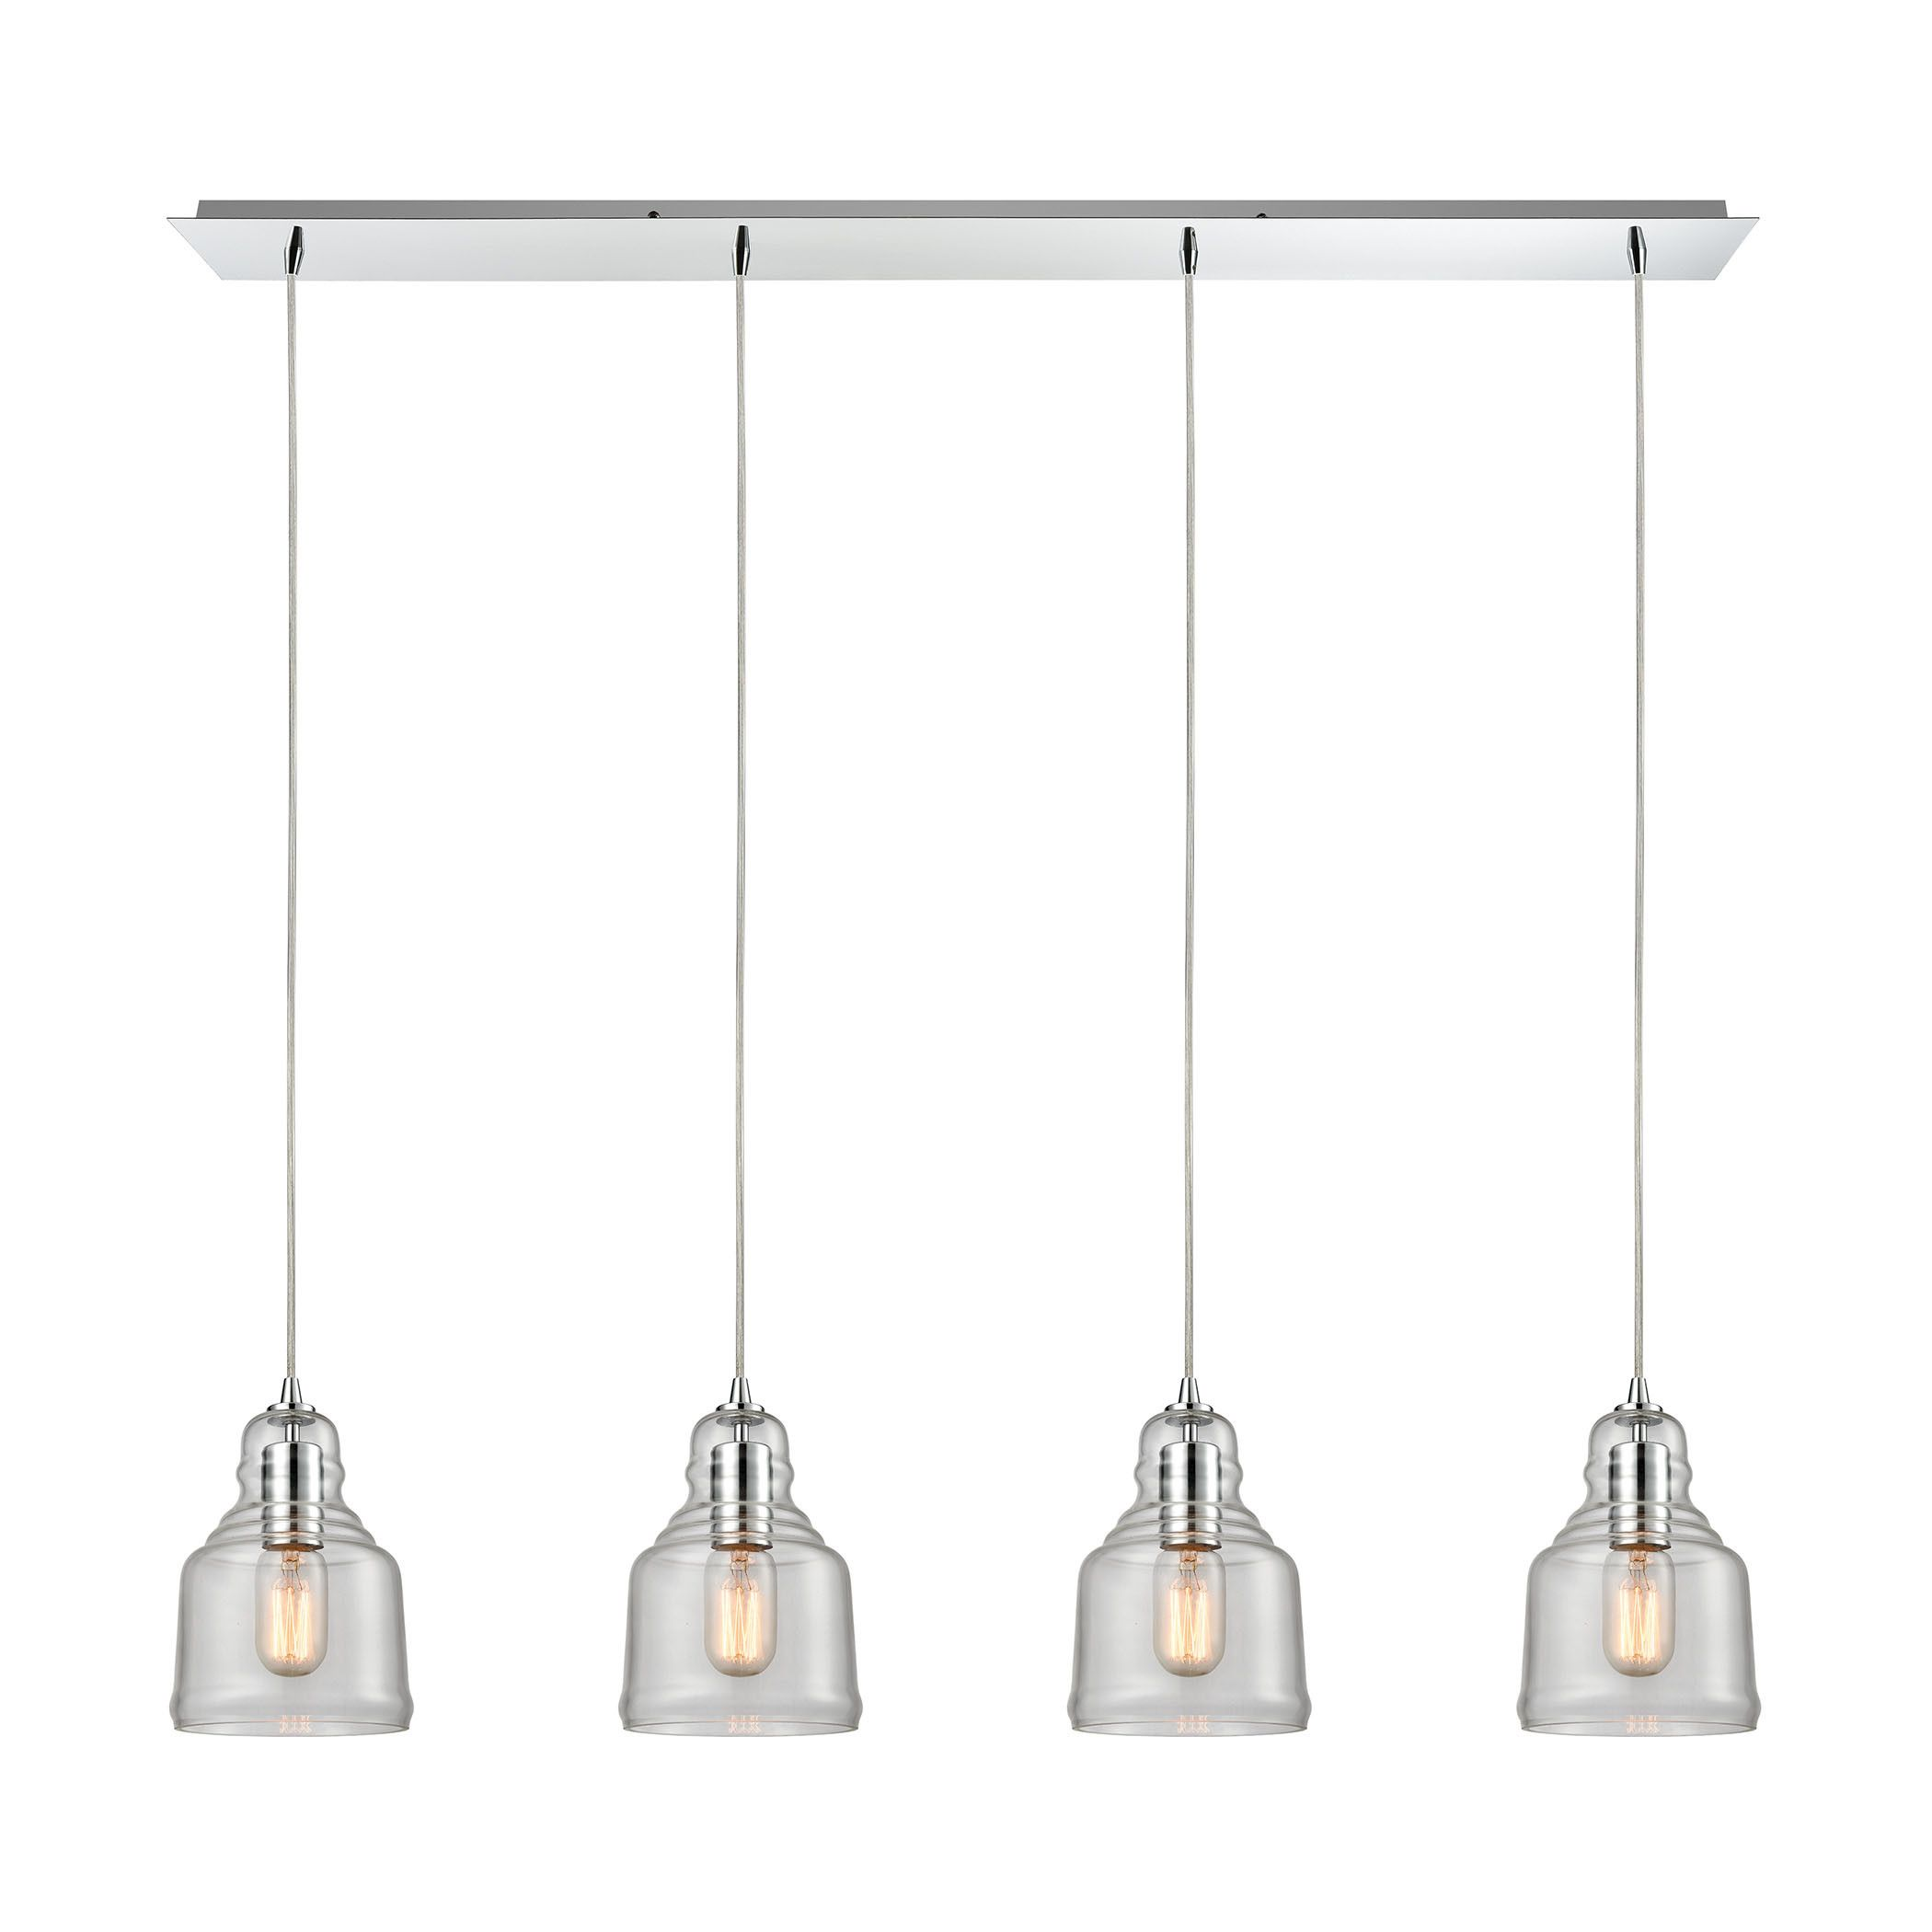 Shop wayfair for island lights to match every style and budget